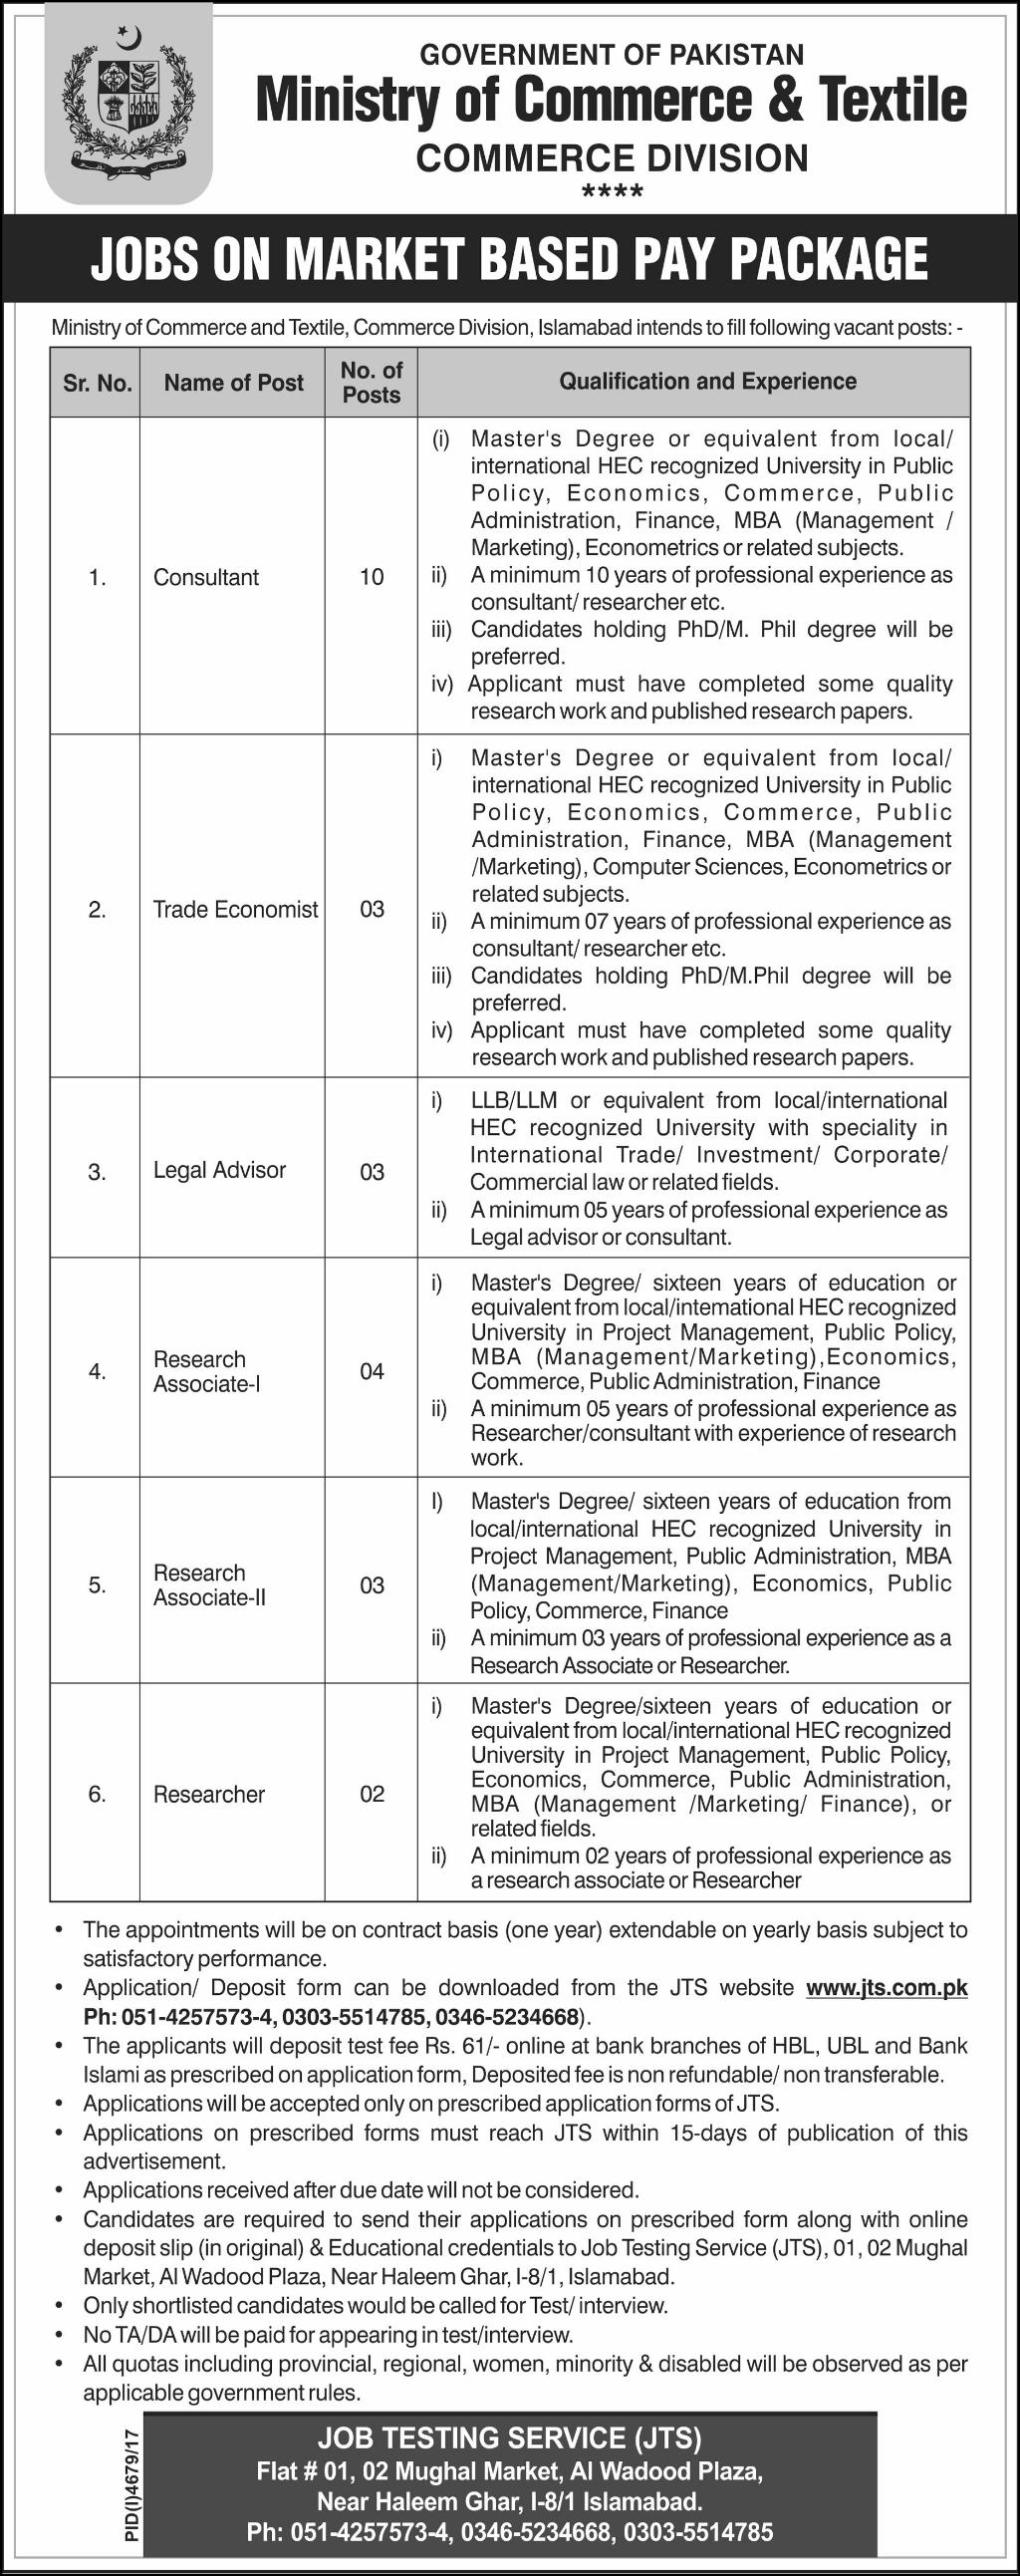 Ministry of Commerce & Textile Commerce Division Jobs 2018